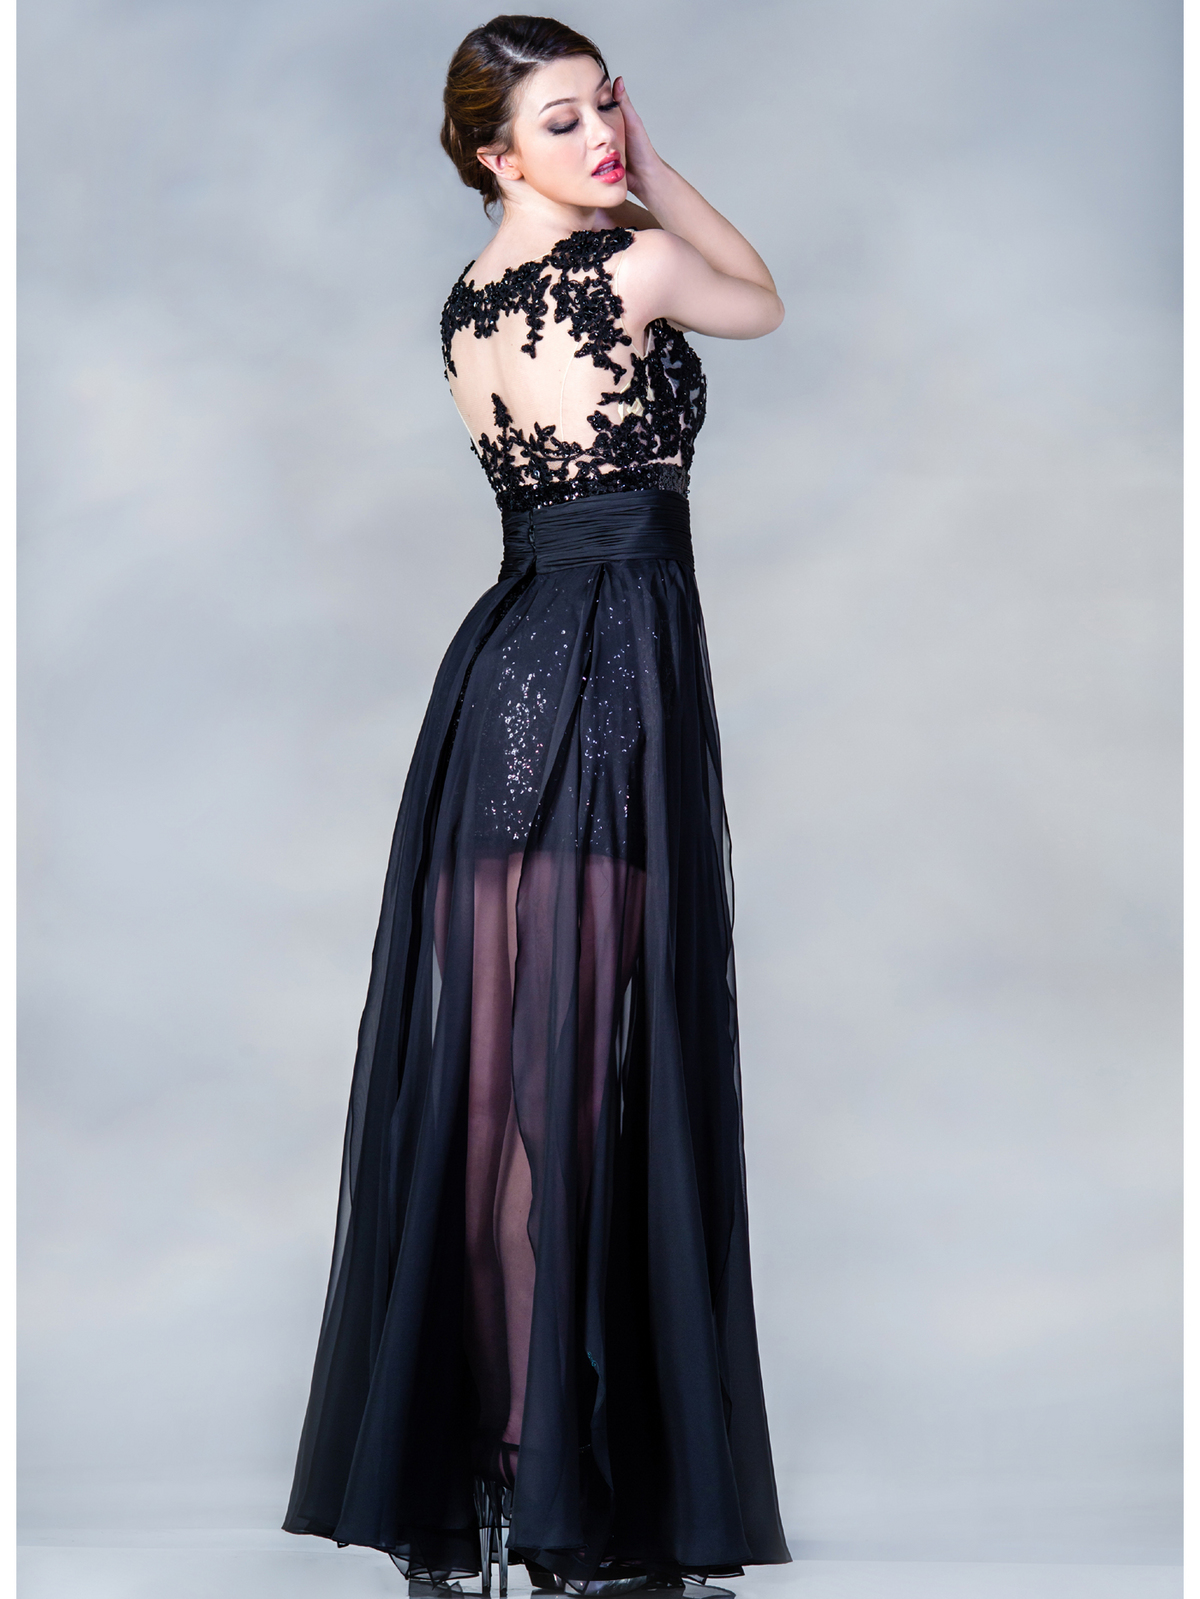 Black and Nude Beaded Evening Dress | Sung Boutique L.A.